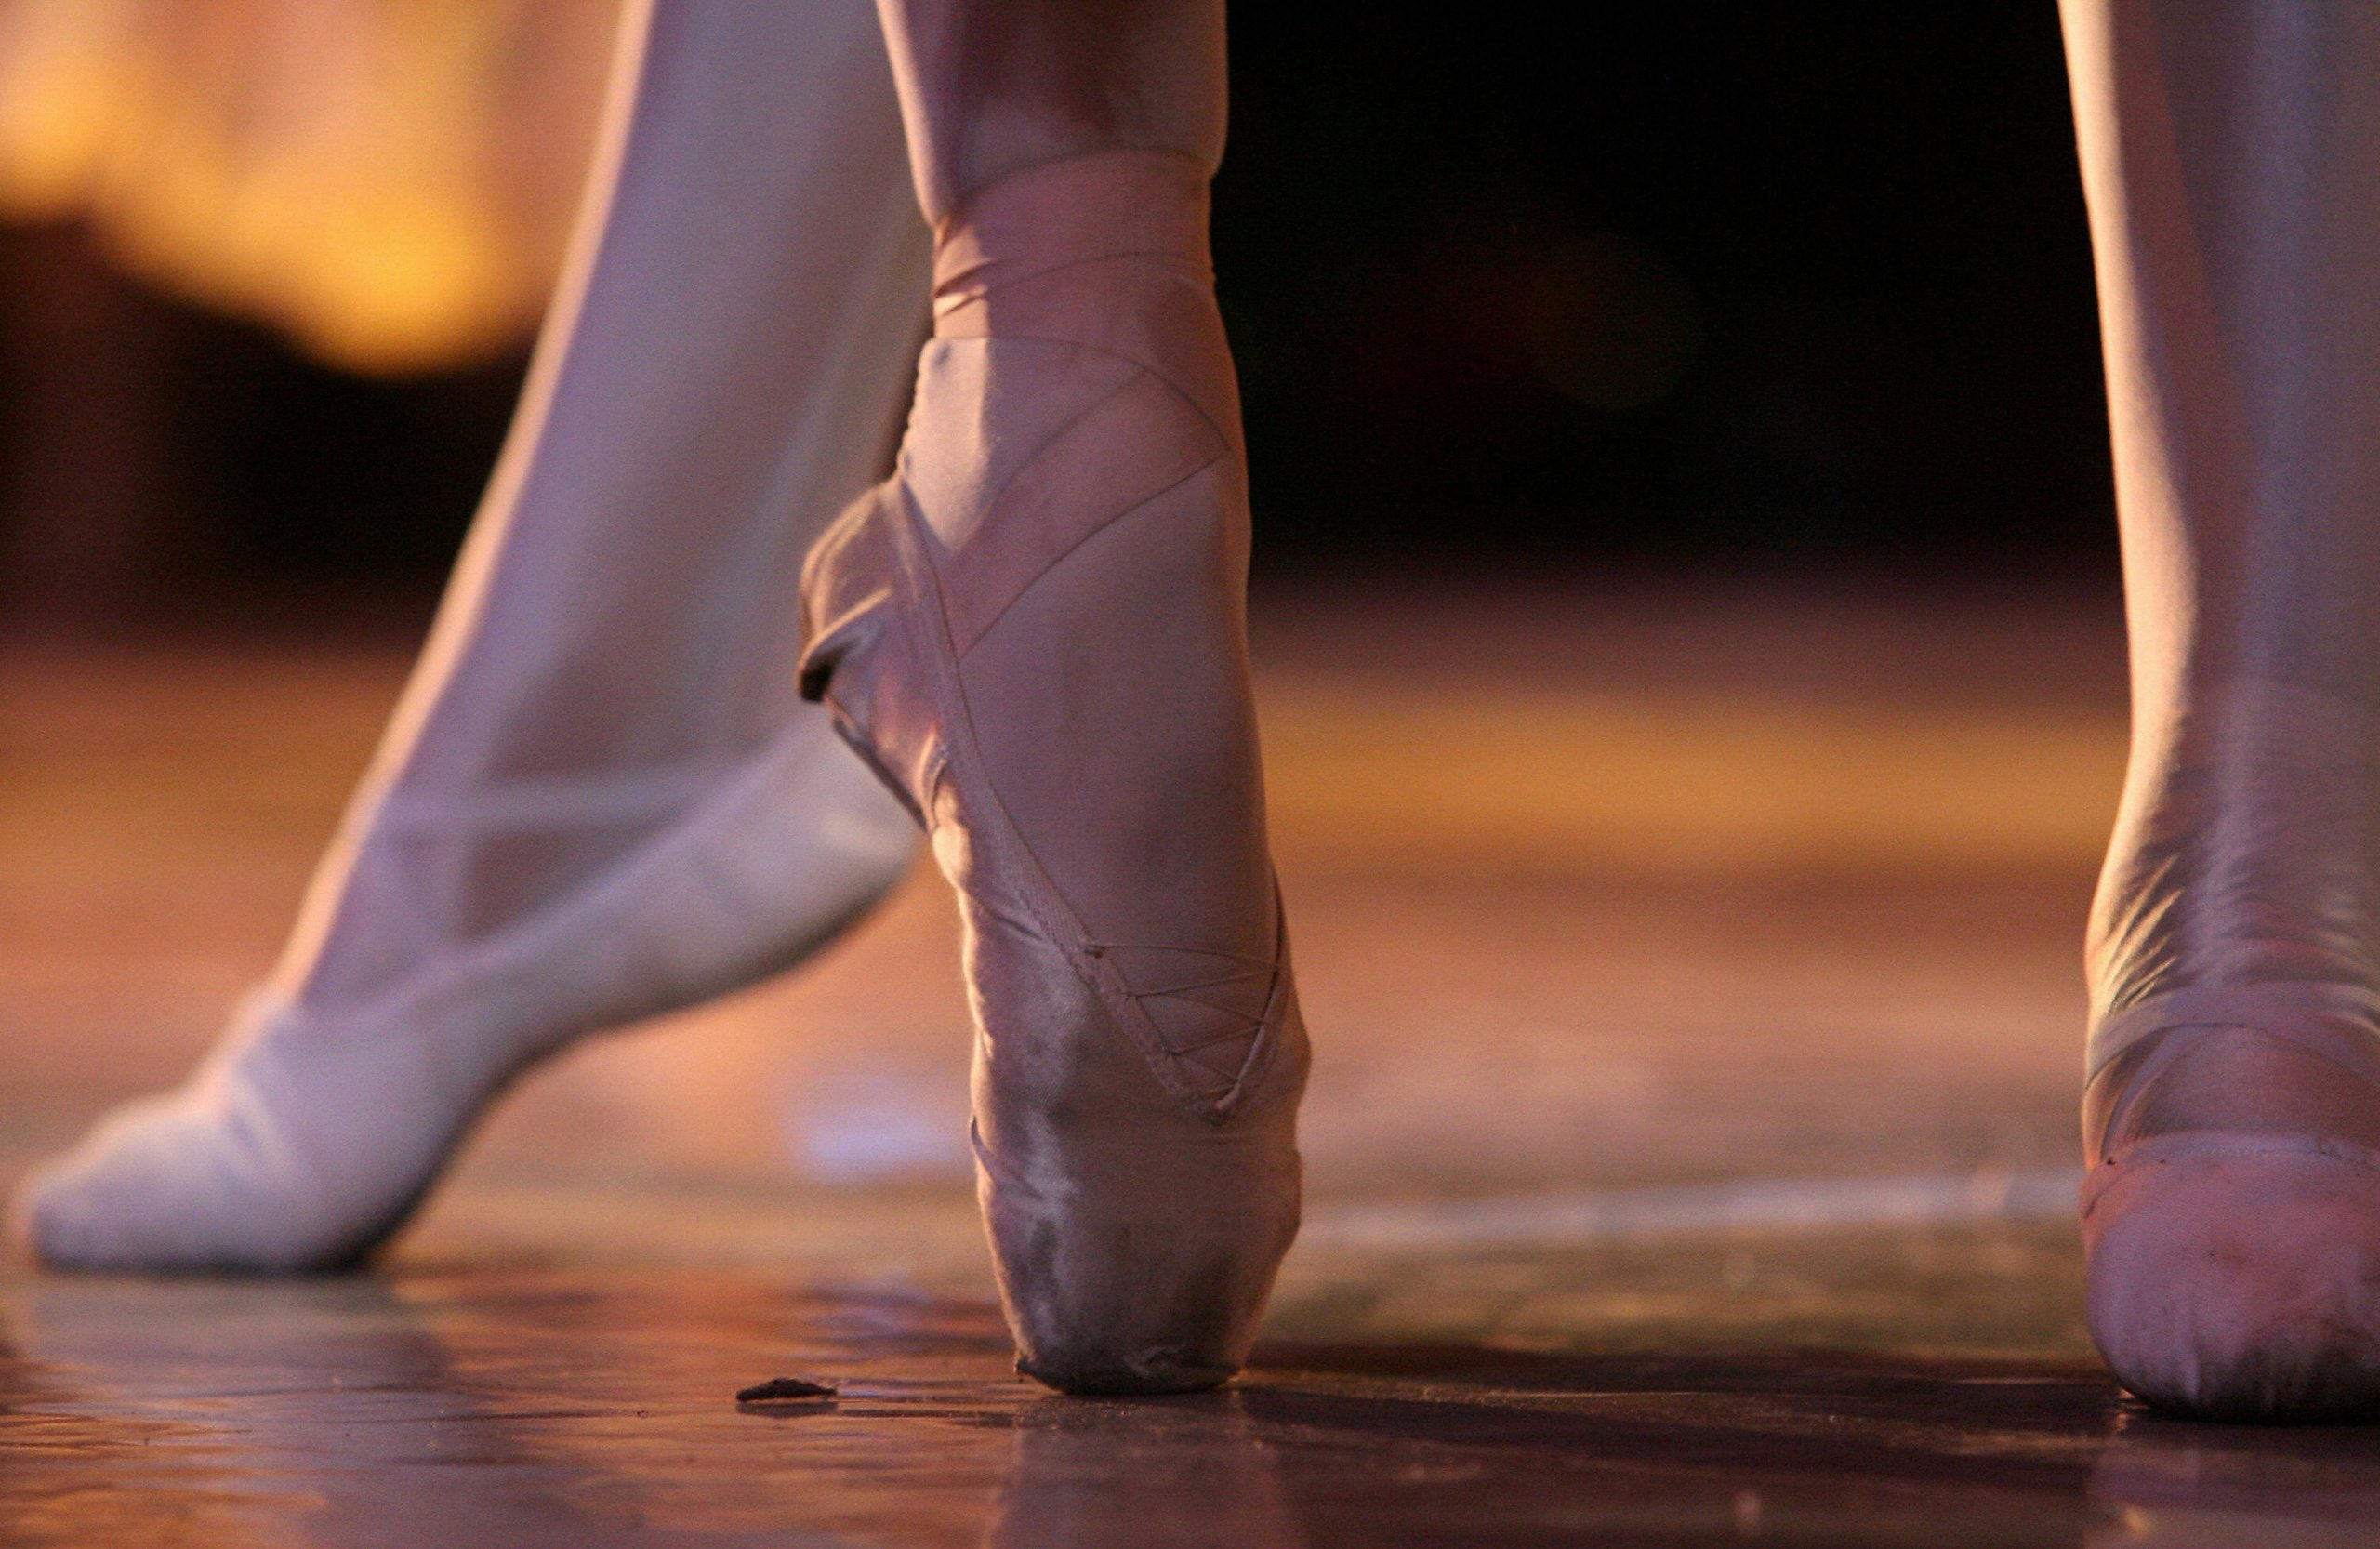 How do I know that my father loved me? One night at the ballet was all the proof I needed